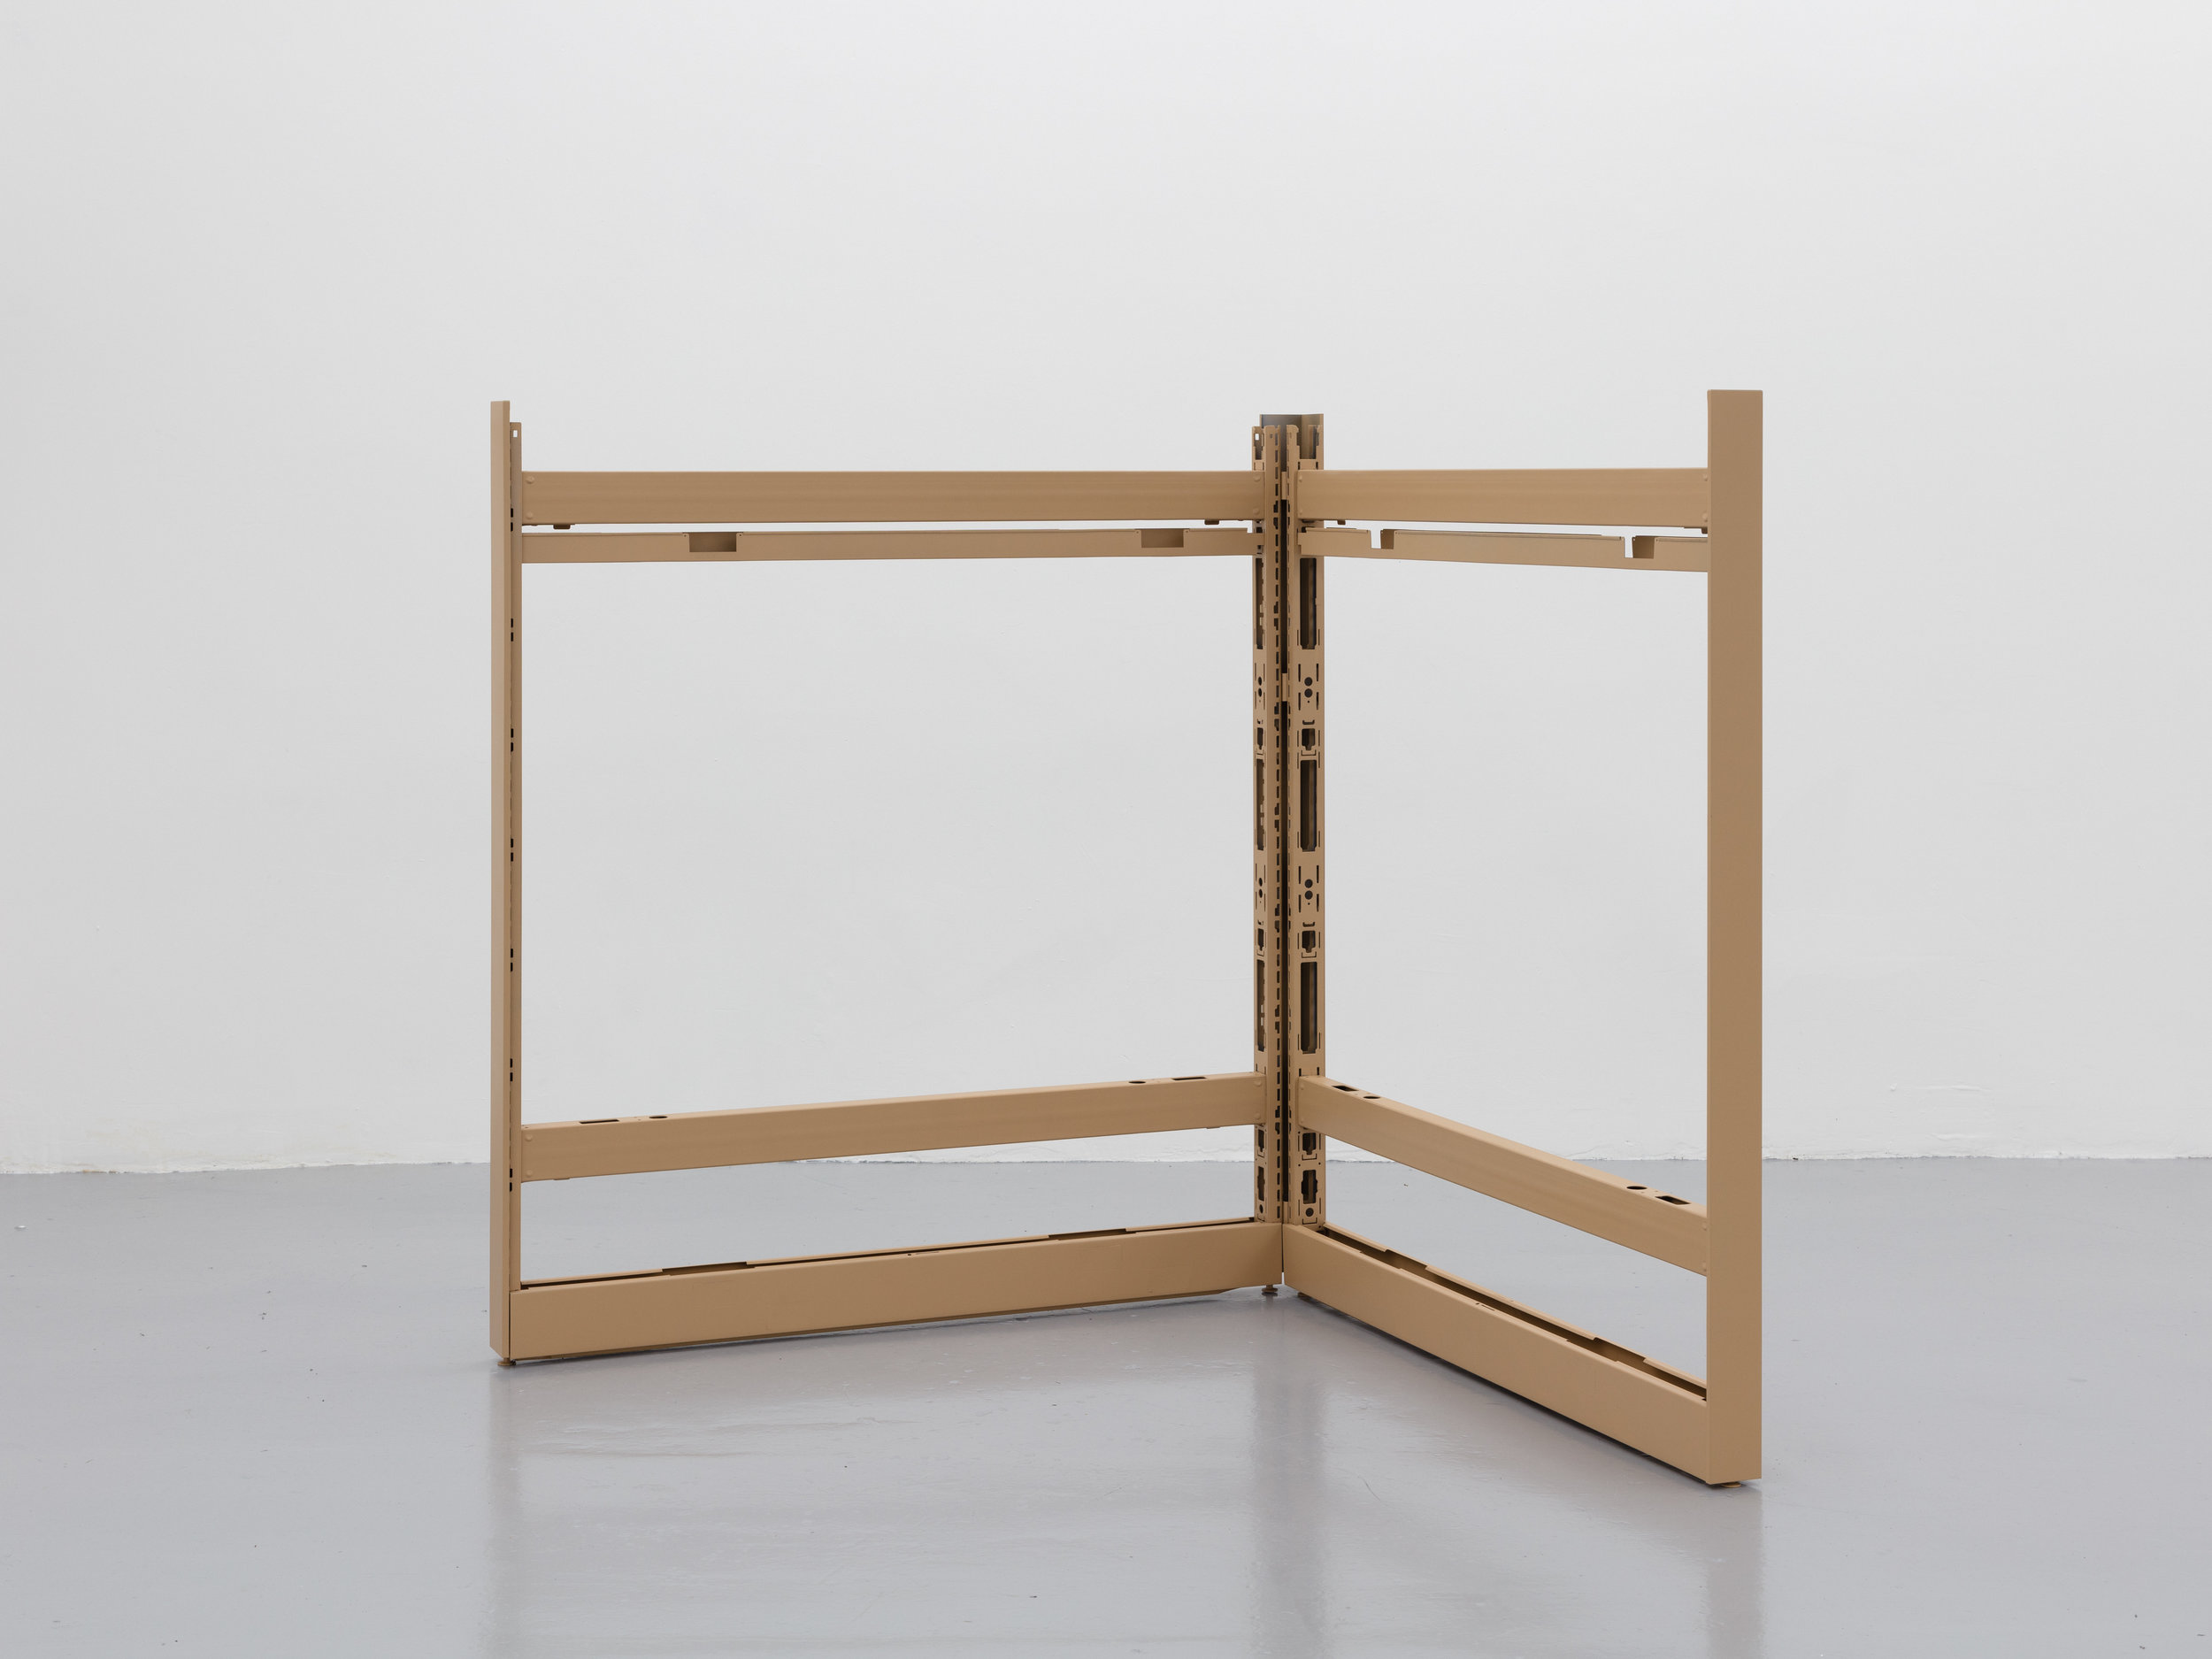 Jessica Vaughn ,   Depreciating Assets: Variable Dimensions , 2018, Metal, lacquer paint and hardware, Dimensions variable